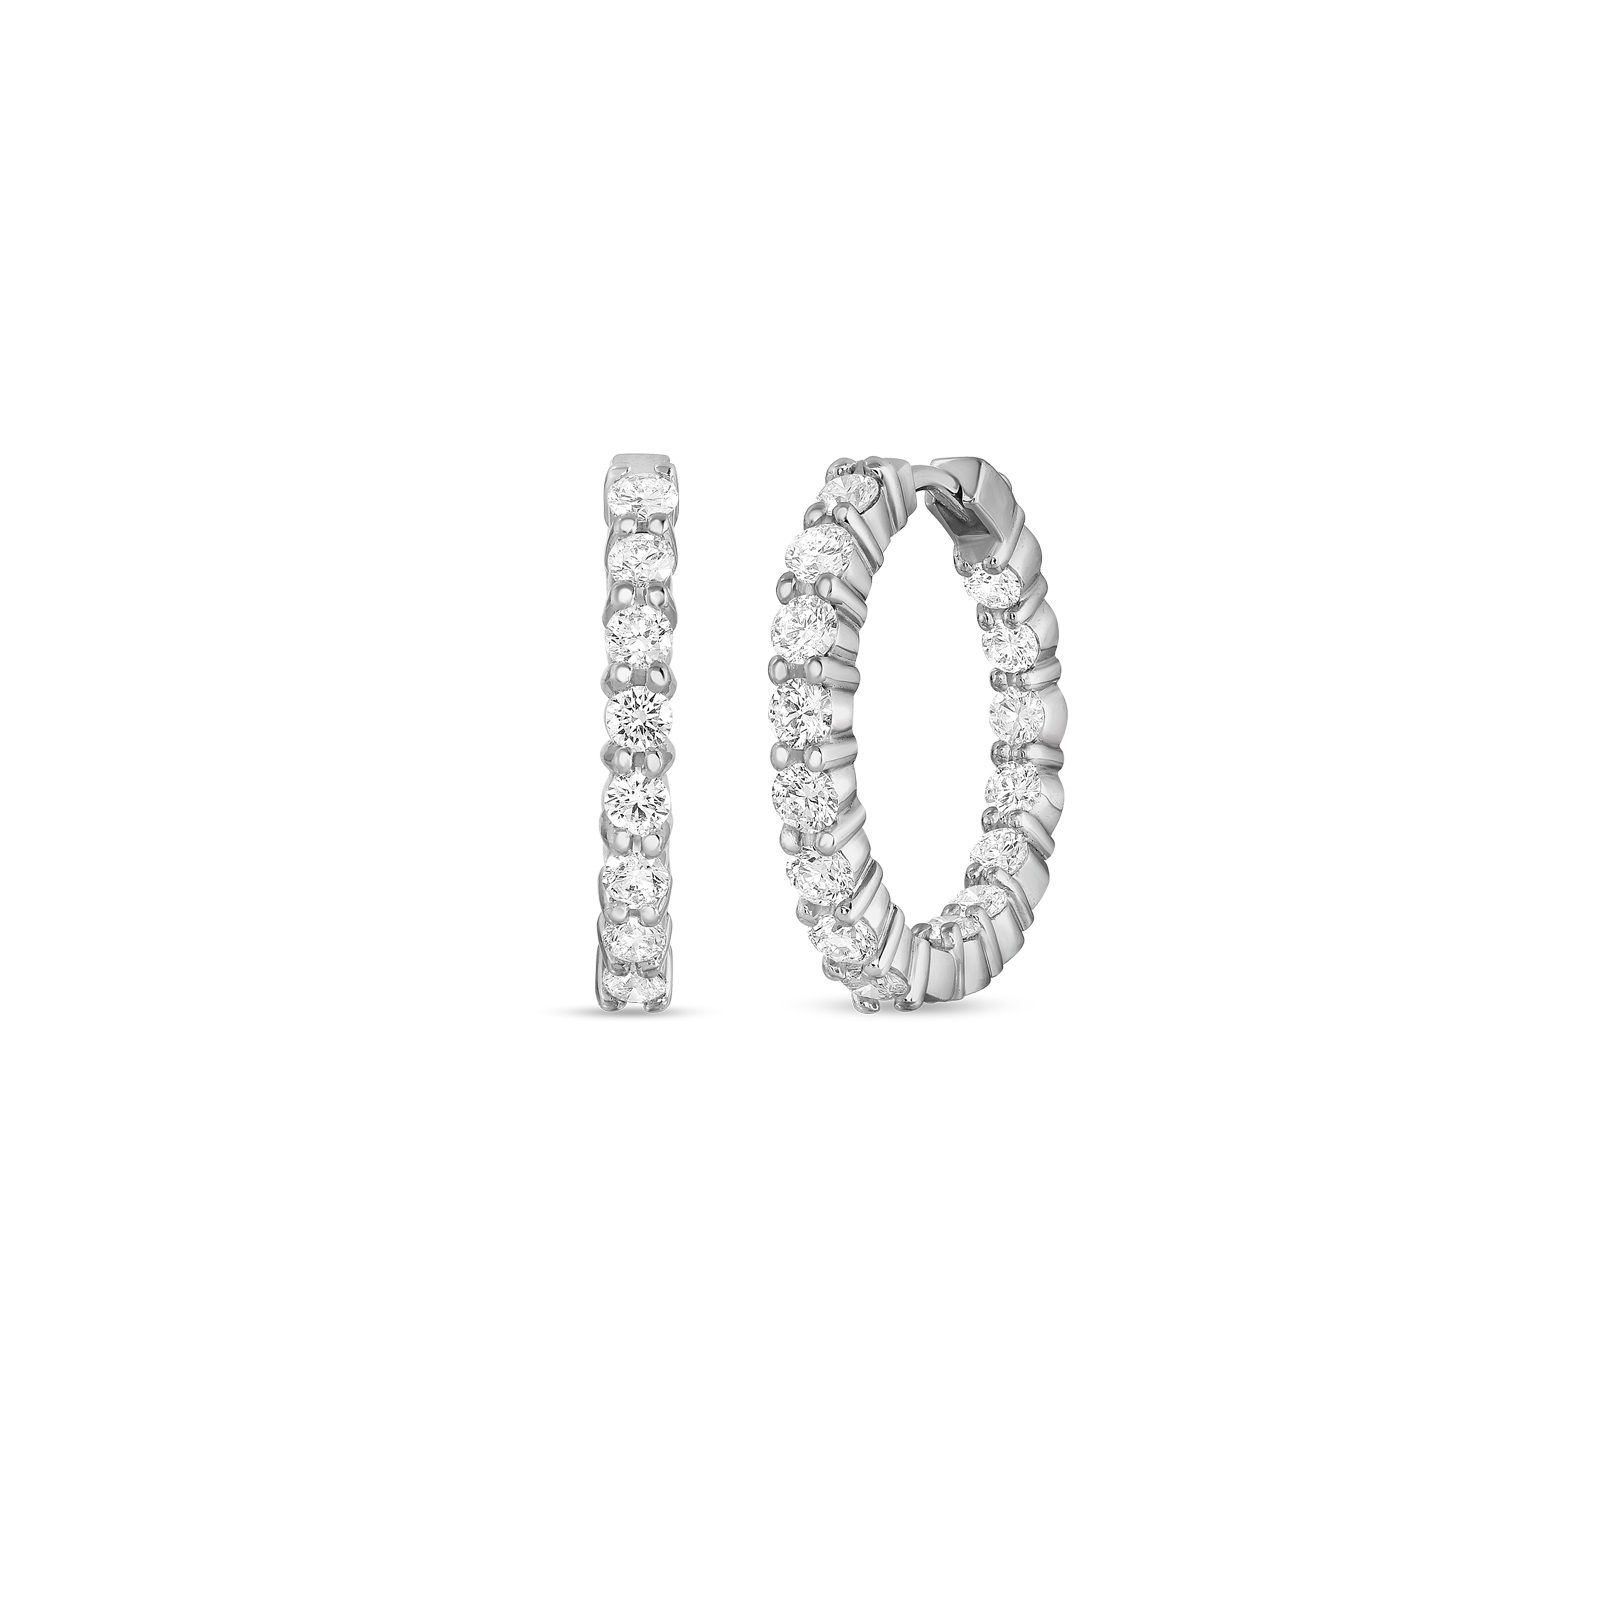 Roberto Coin 18K White Gold 2.35cts  Diamond Gold Earrings with Stones 000568AWERX0